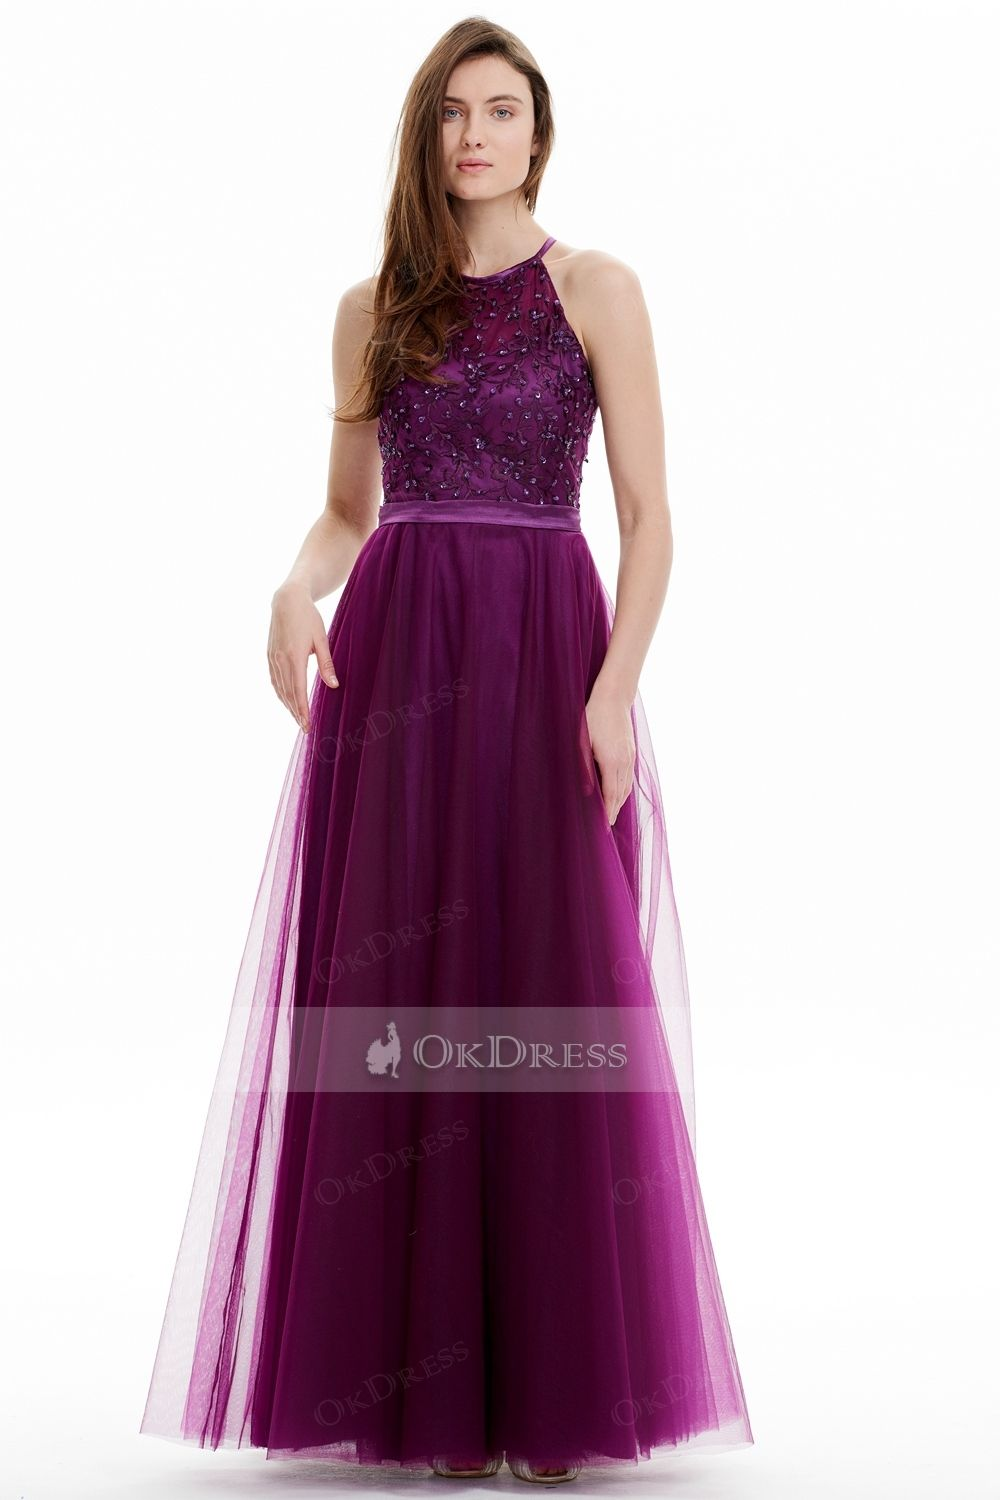 Okdress long embroidered halter top prom dress sale by okdress uk